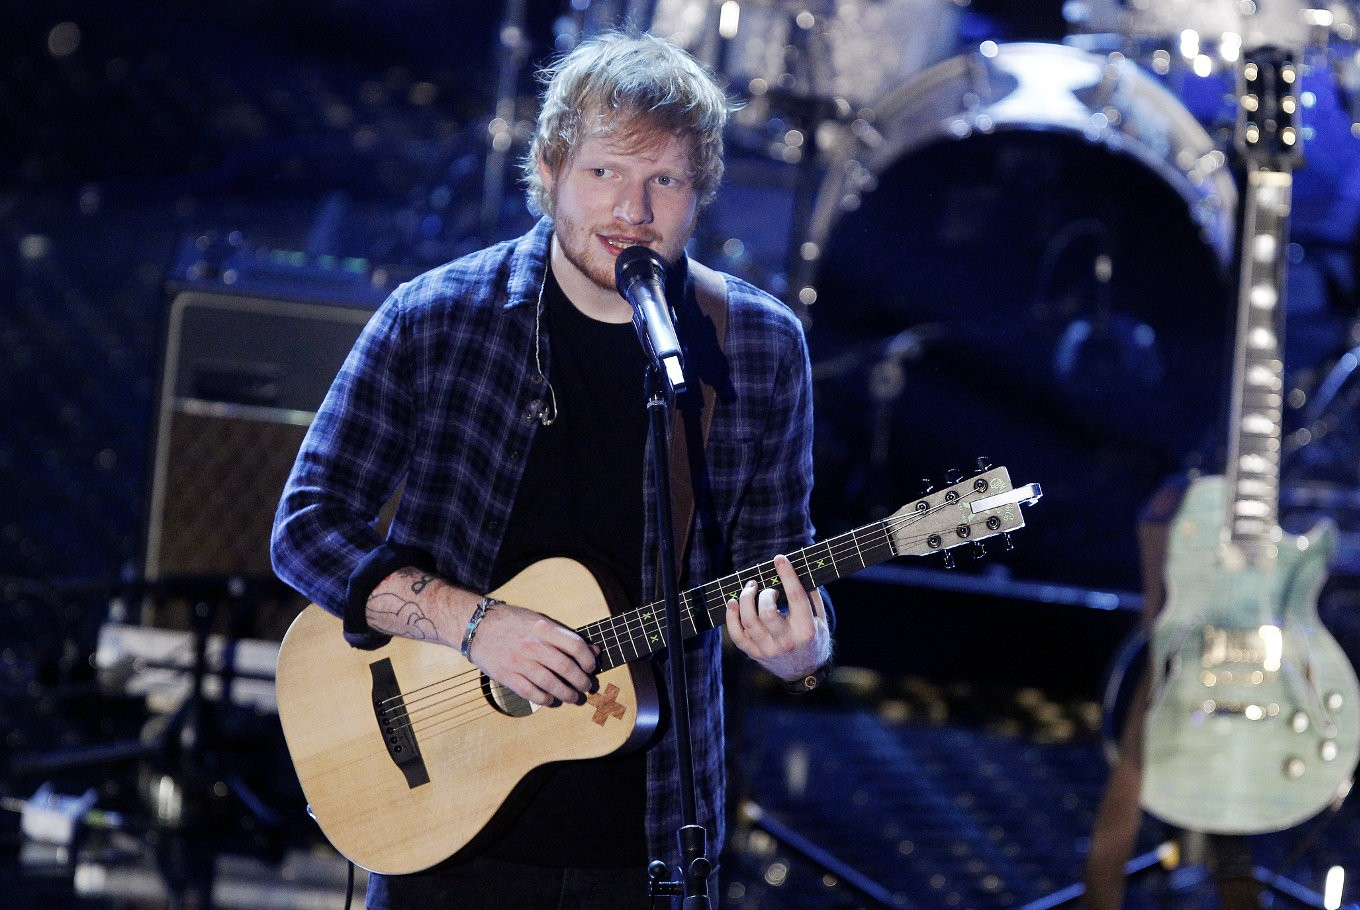 Tickets for Ed Sheeran's Singapore concert on April 26 still available